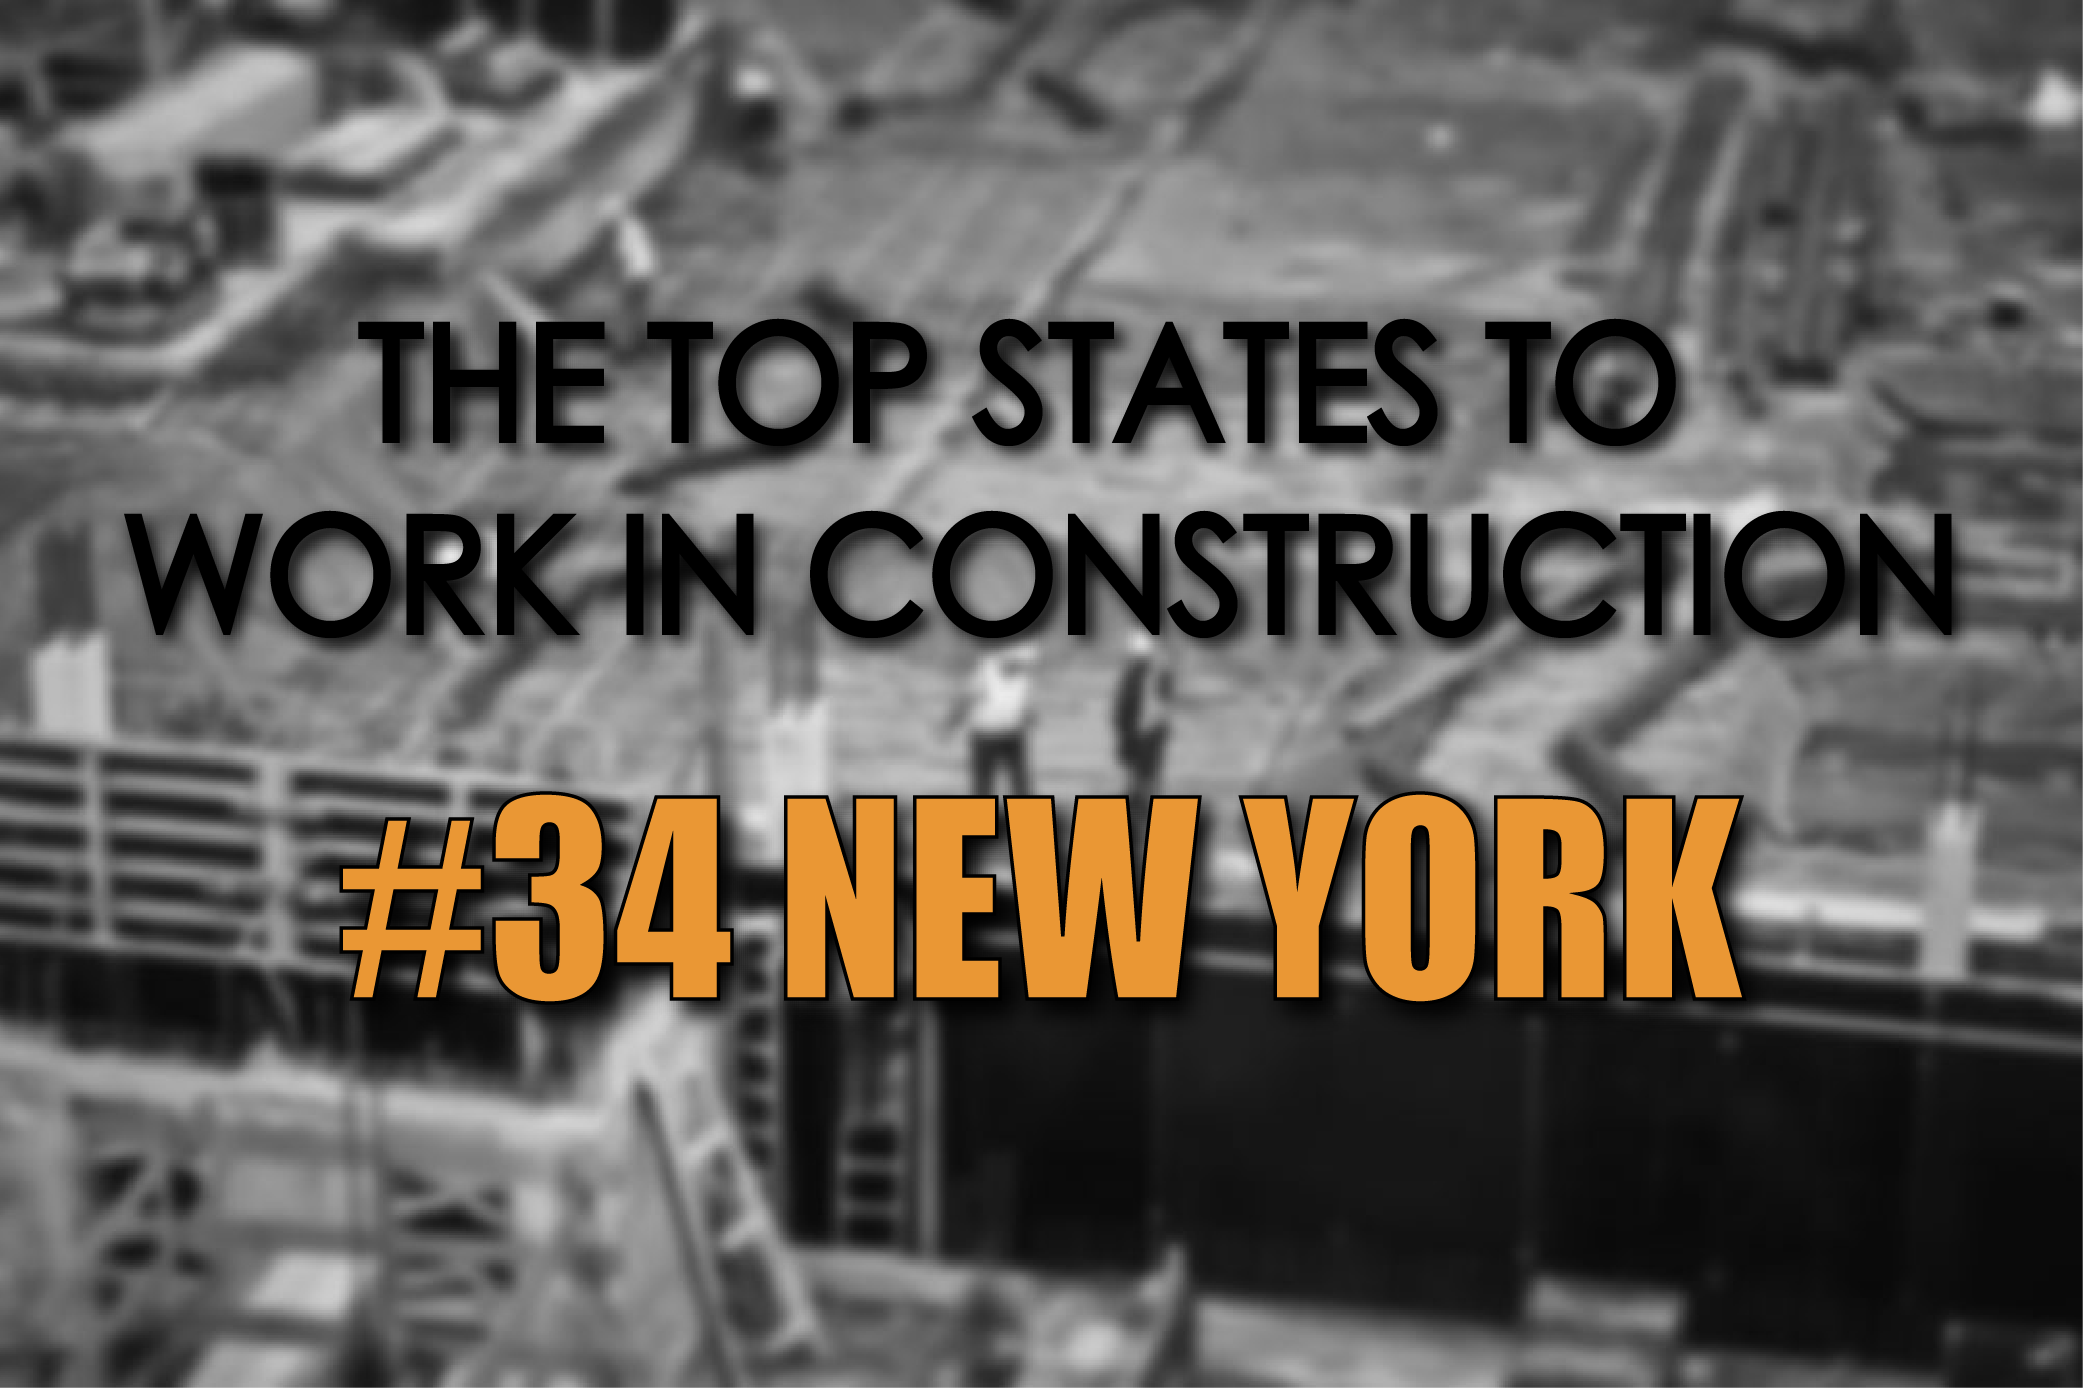 New York best states to work in construction